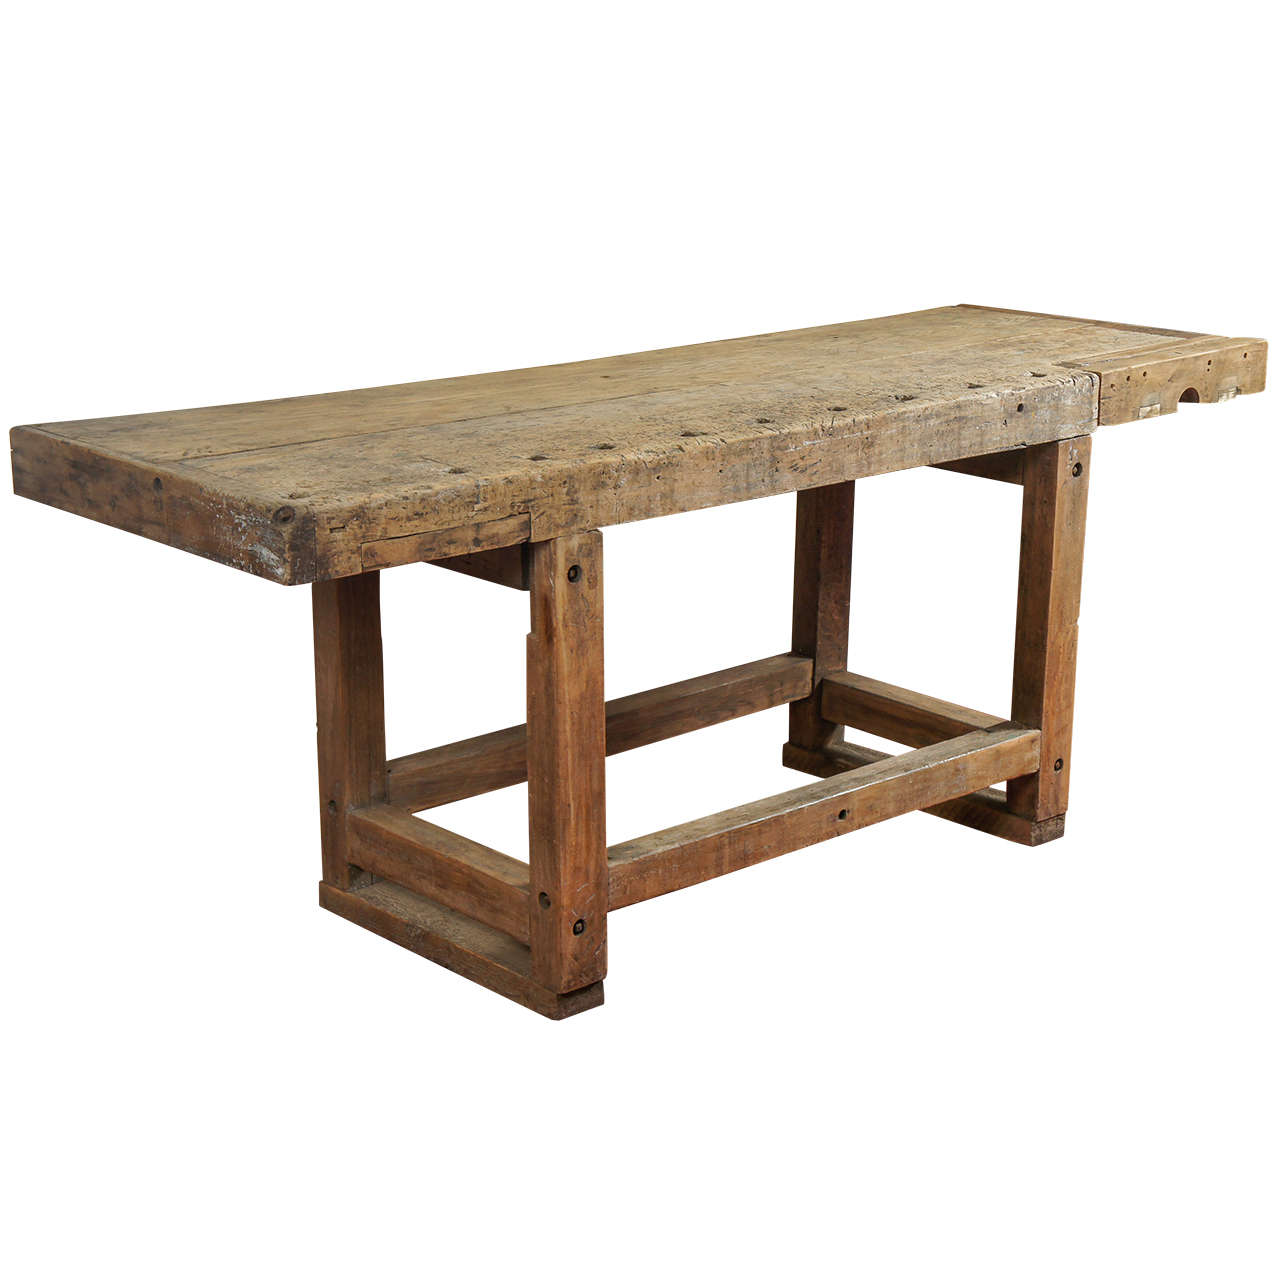 Industrial workbench kitchen island table at 1stdibs - Bench tables for kitchen ...